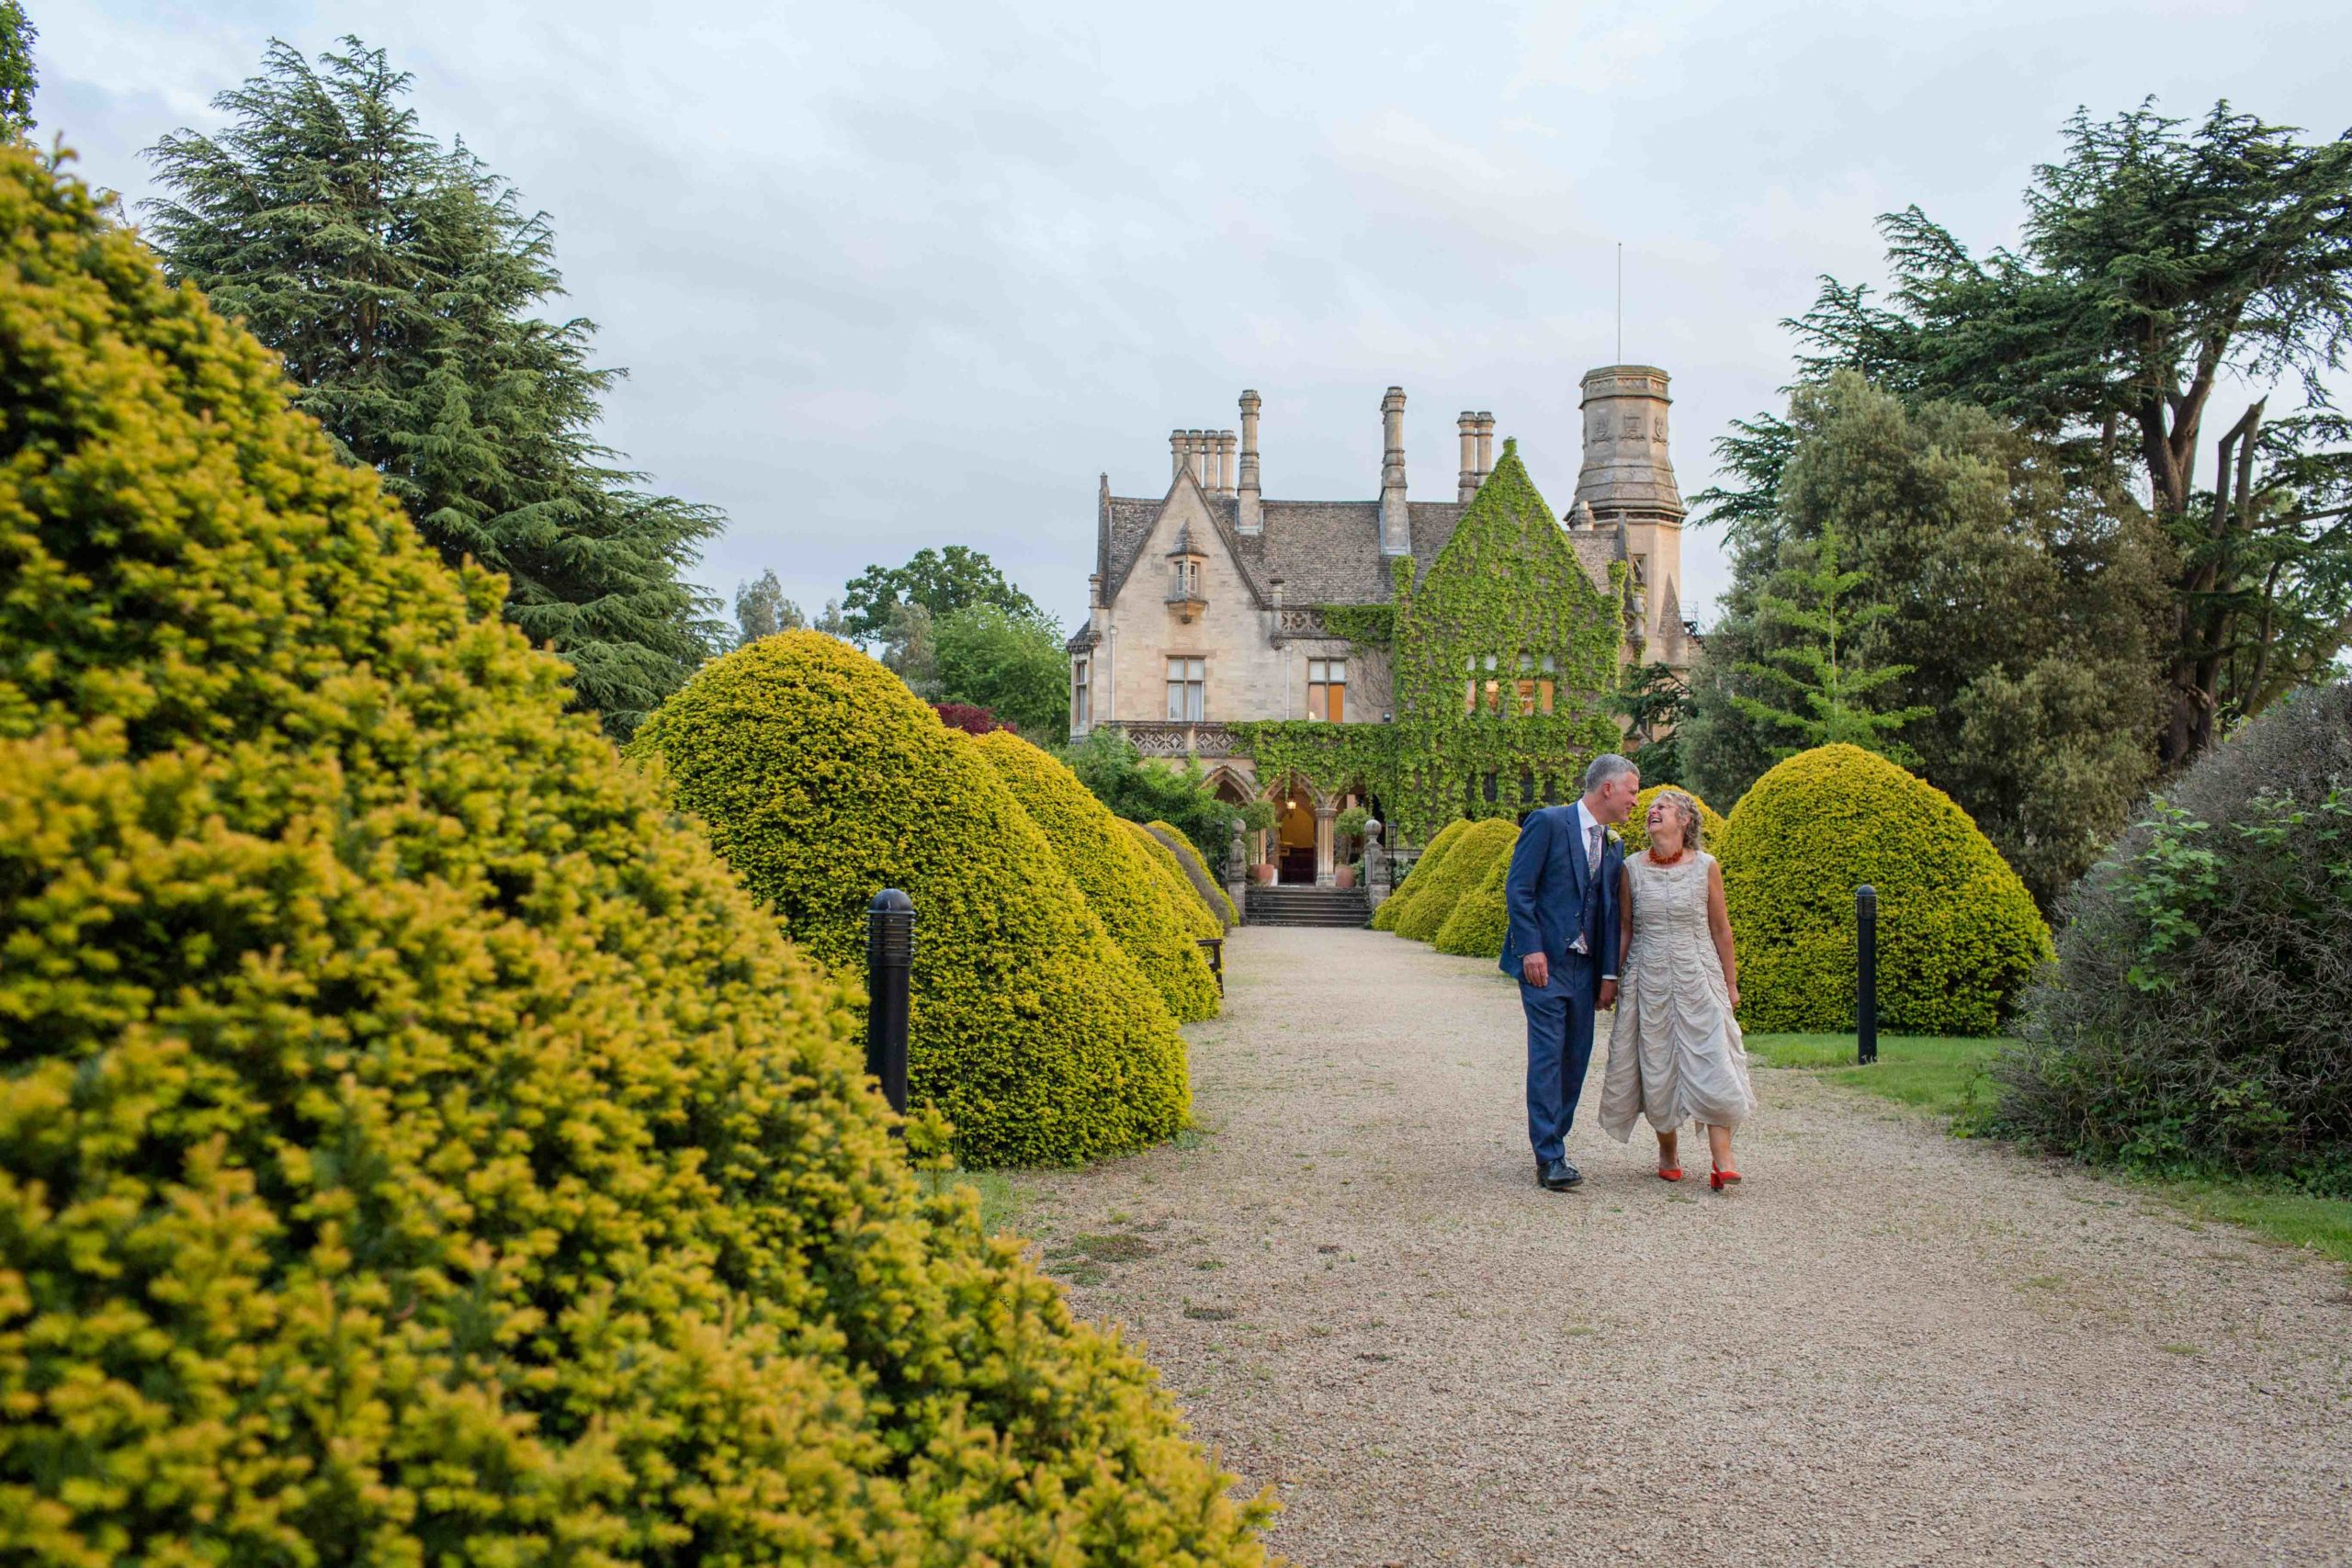 Cotswolds Wedding Photographer, Manor by the lake, Gloucestershire, Bride and Groom walking down wide stone chip path lined with green ornamental bushes and Manor in the background.